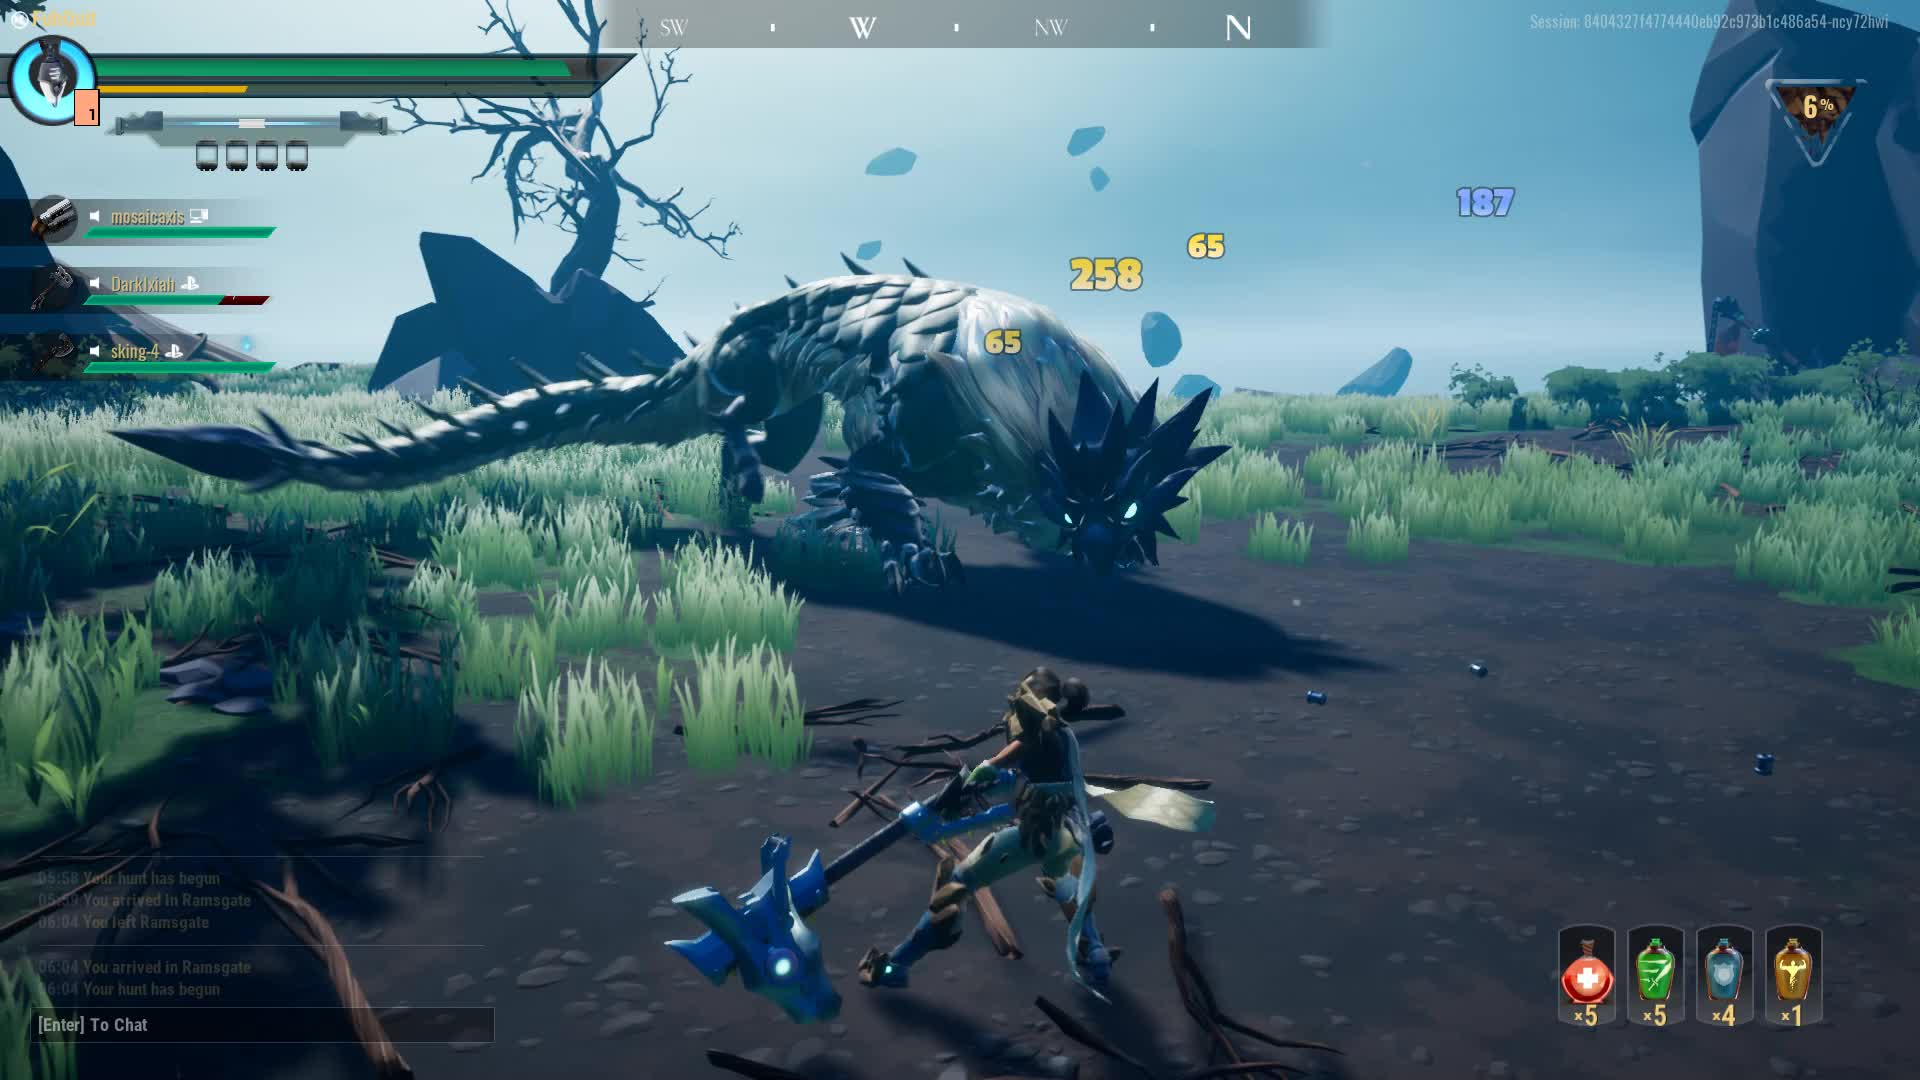 Dauntless Game Gifs Search   Search & Share on Homdor